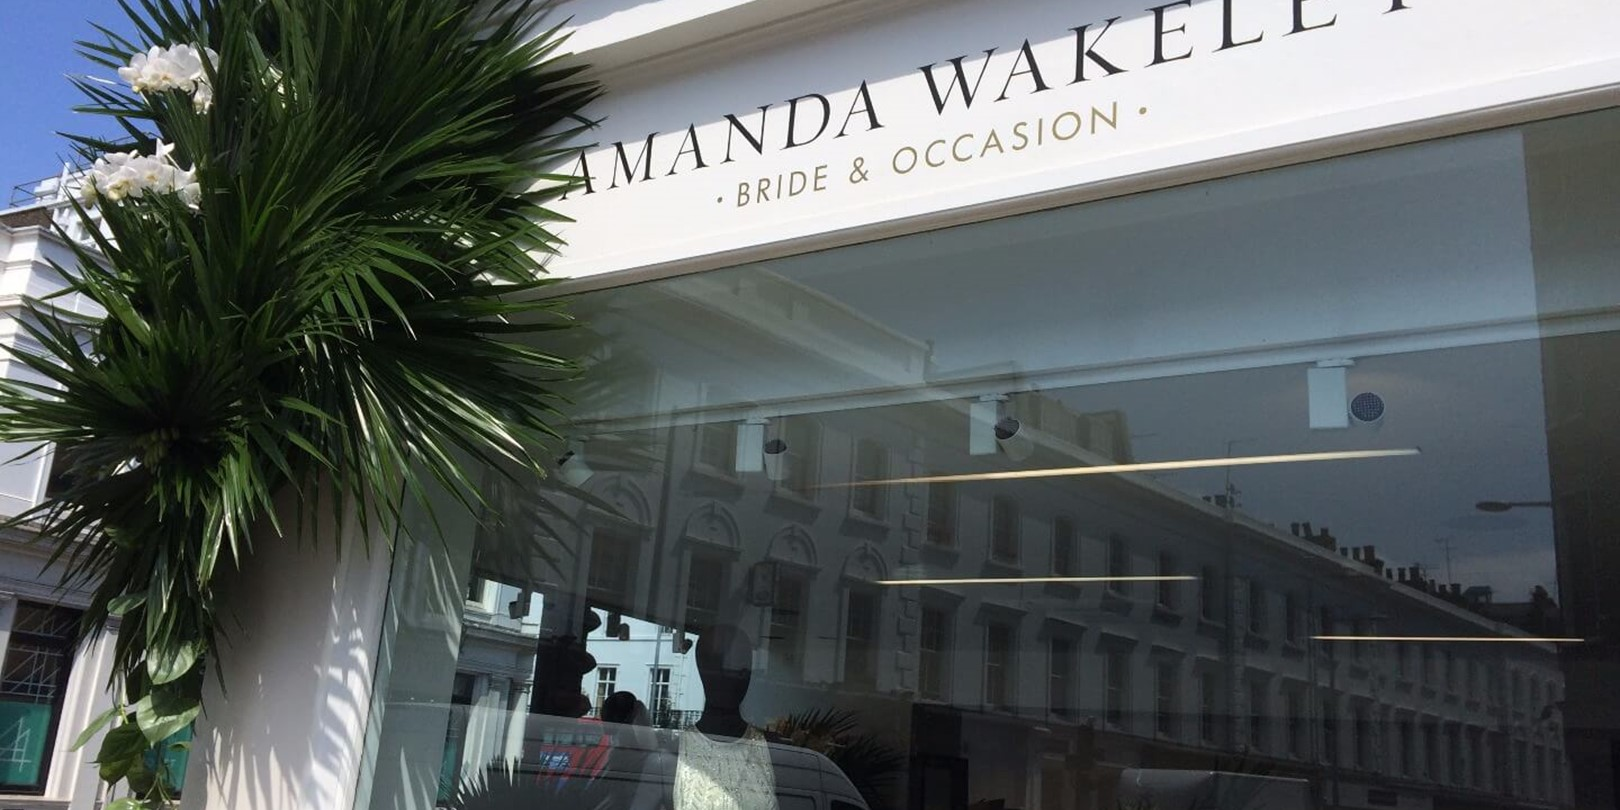 Veevers Carter_Floral Design_Styling_Installation_Amanda Wakeley.JPG